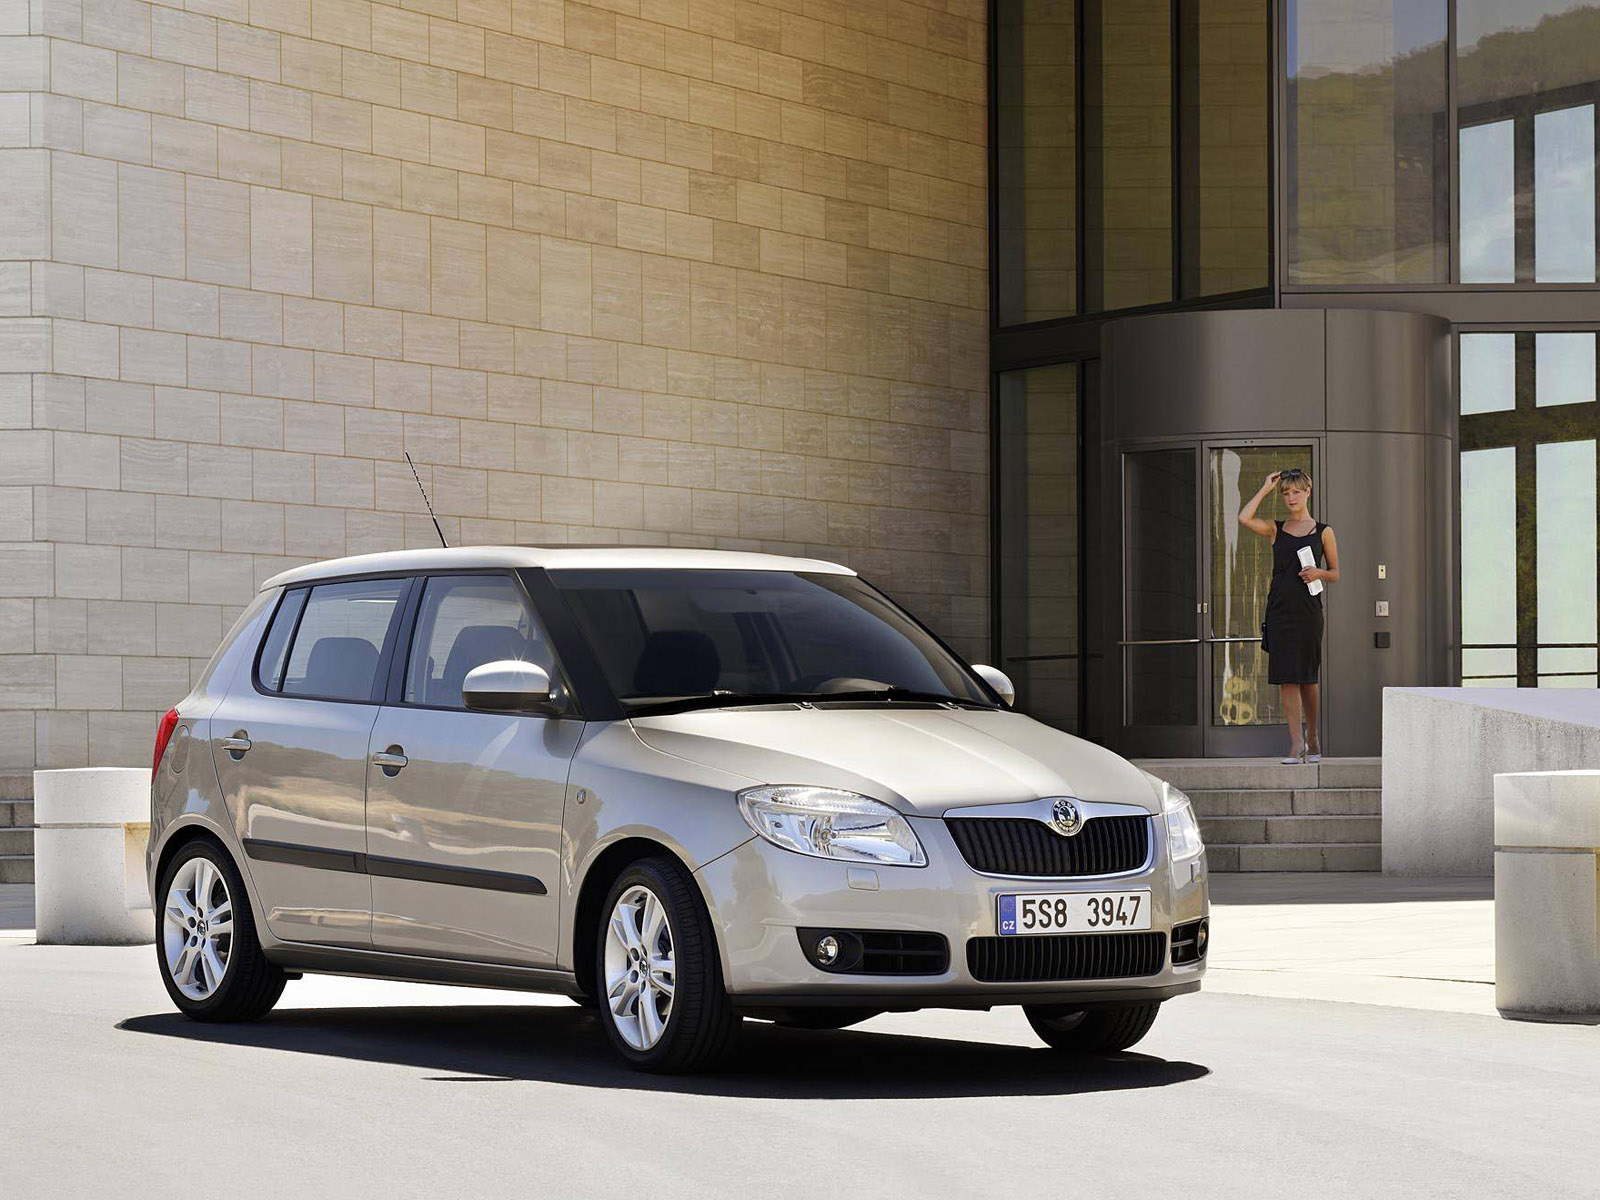 skoda fabia ii photos photogallery with 13 pics. Black Bedroom Furniture Sets. Home Design Ideas